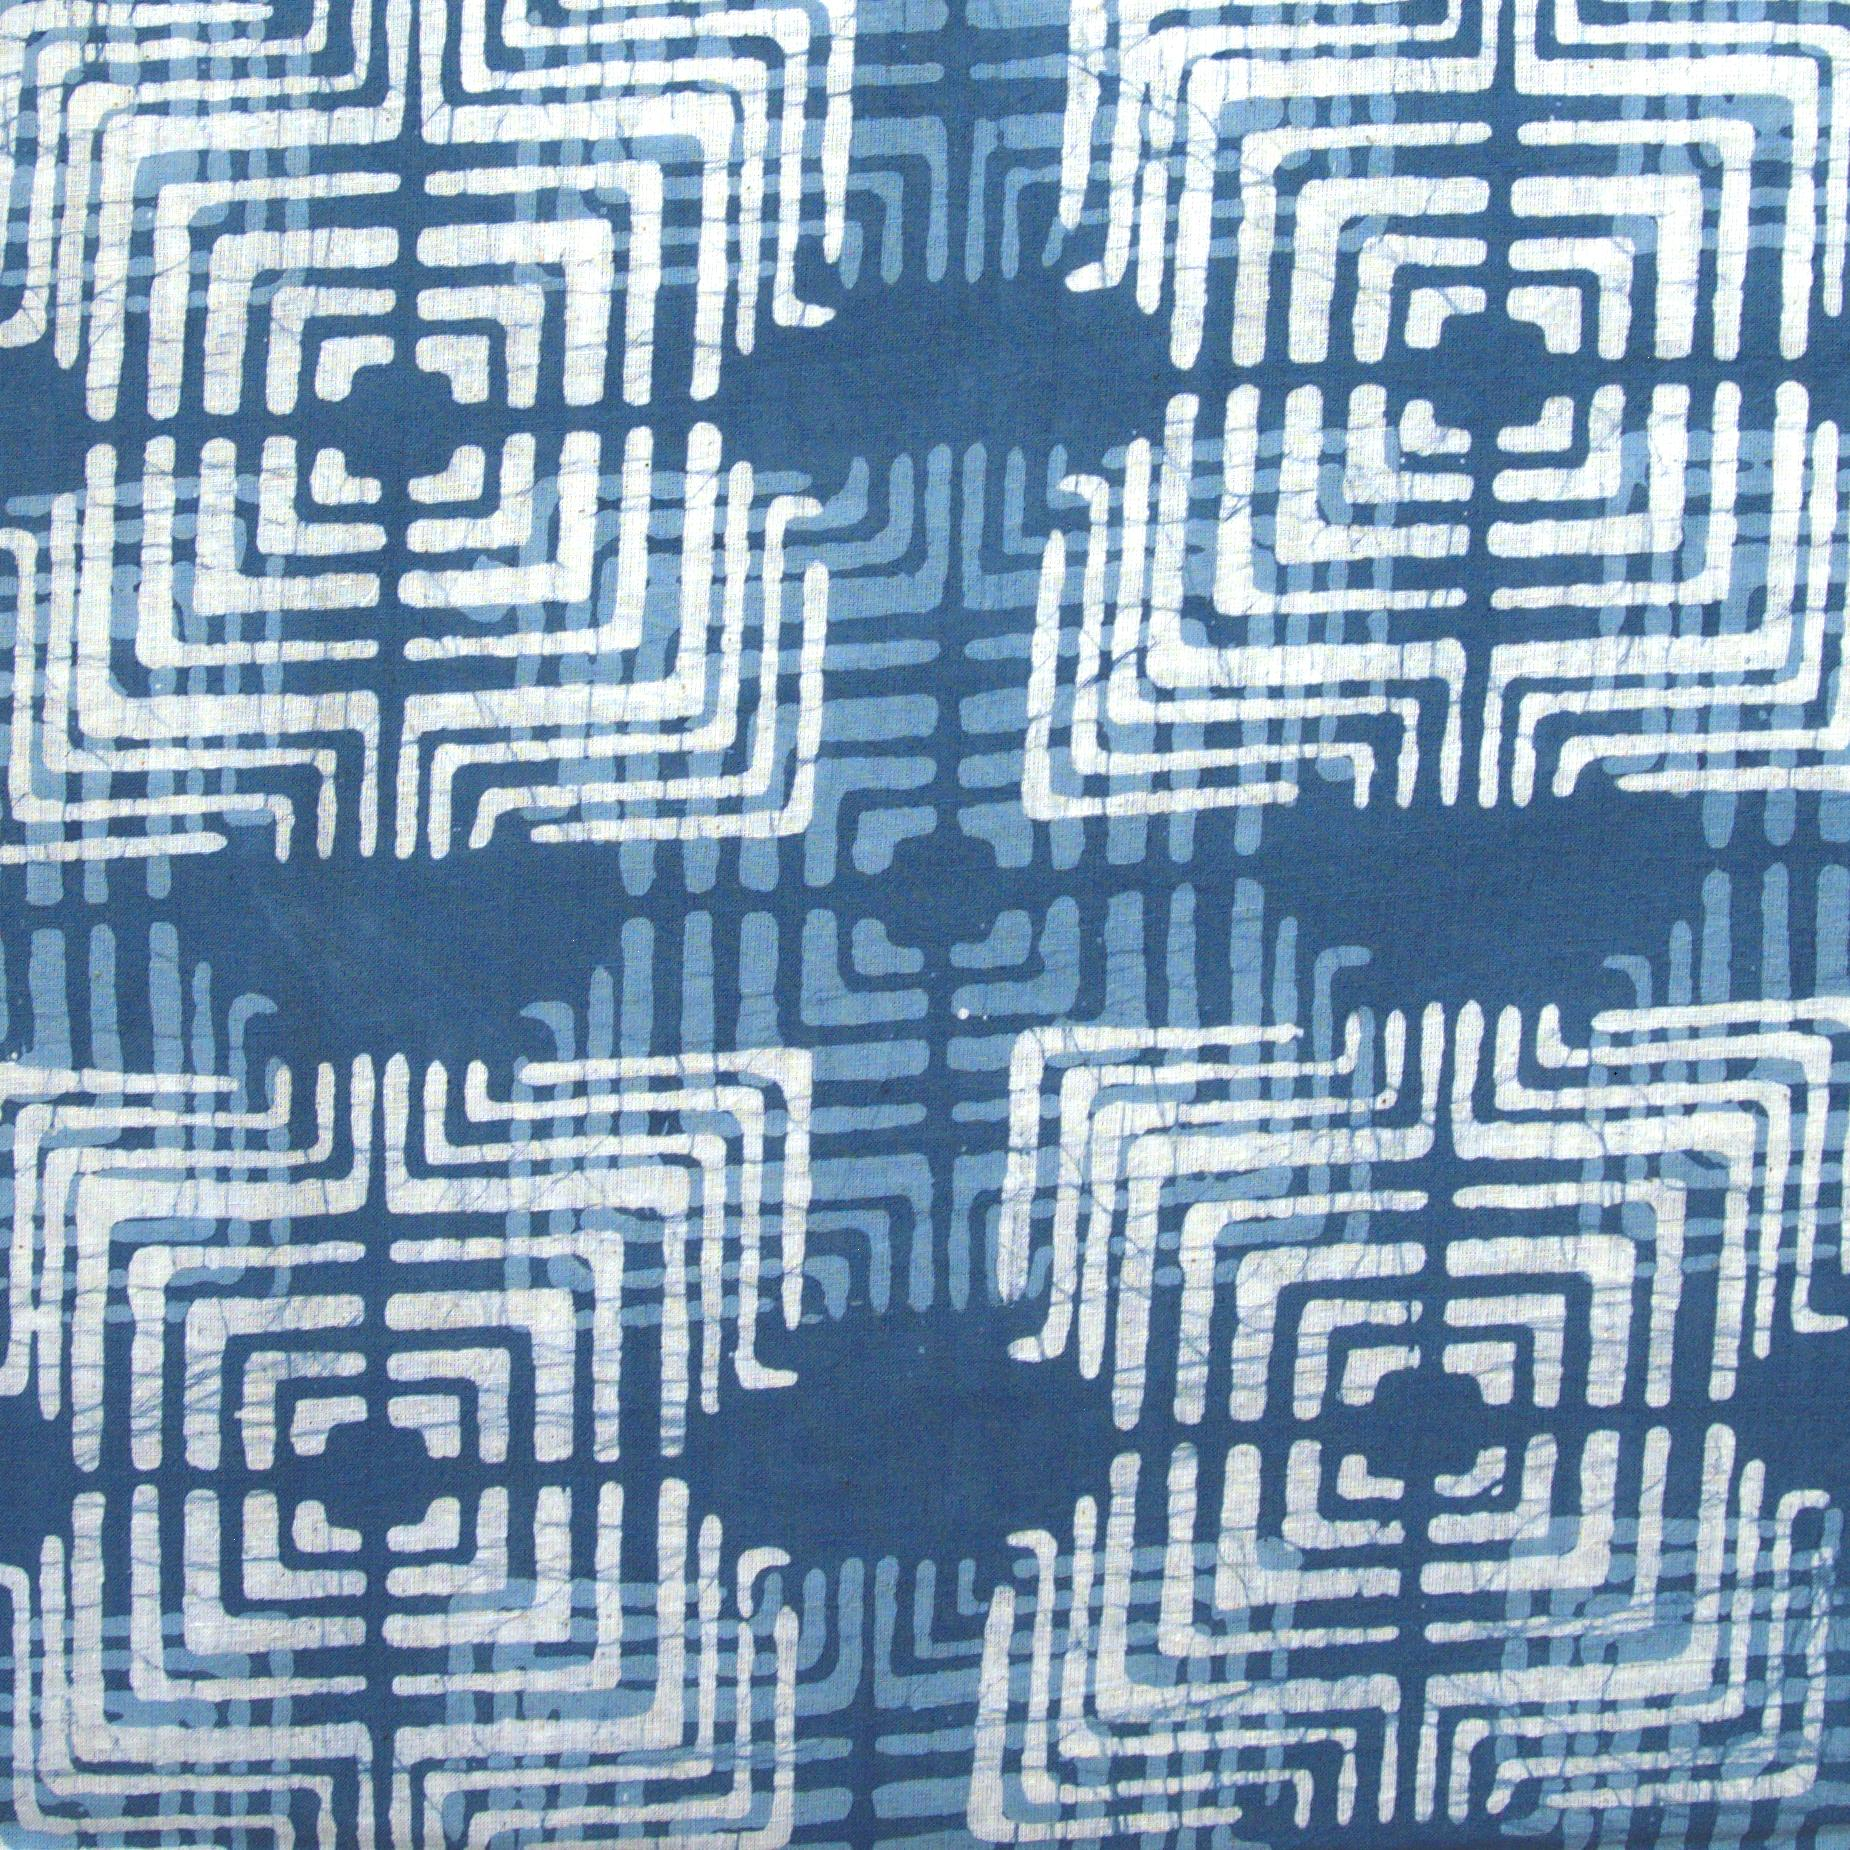 2 - SHA11 - 100% Block-Printed Batik Cotton Fabric From India - Batik - Blue Mirage